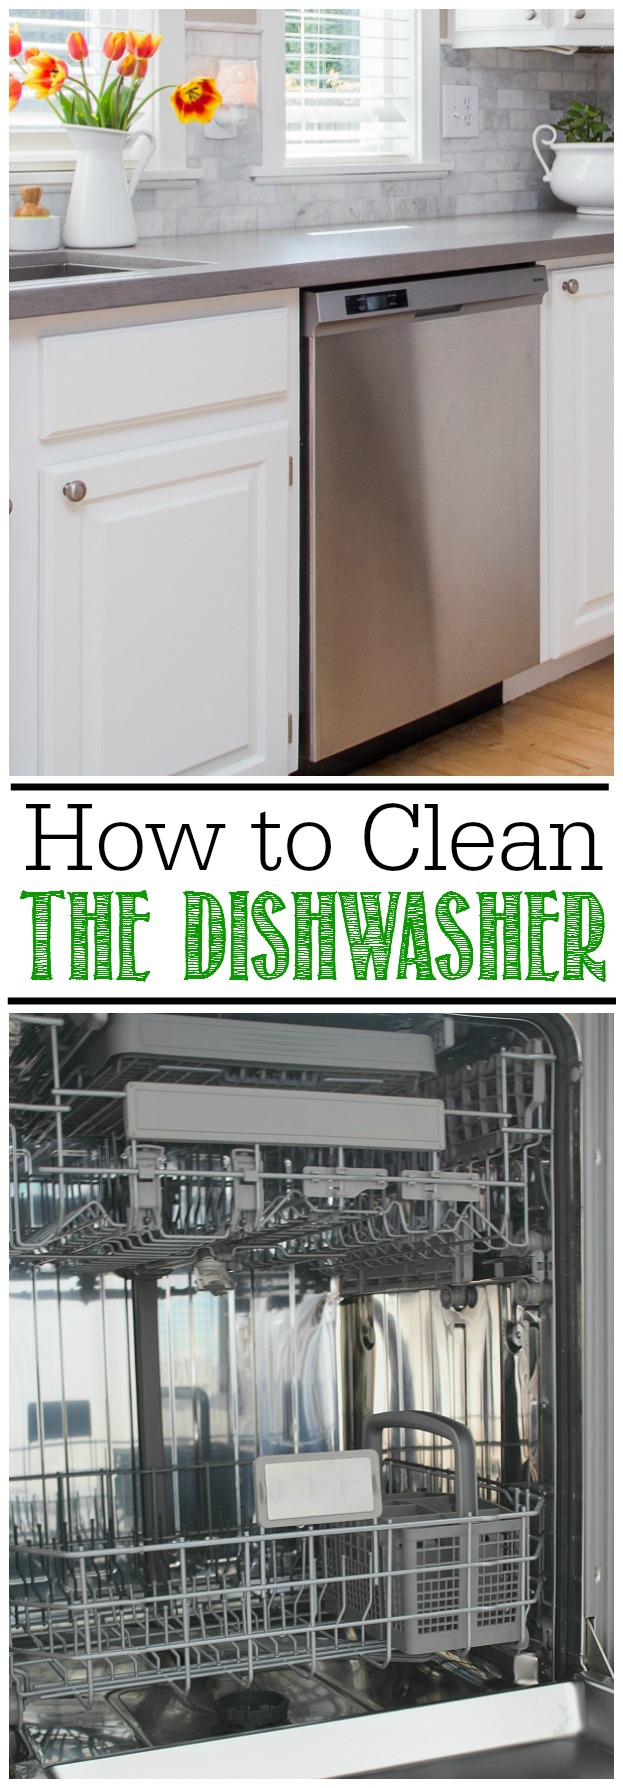 Countertop Dishwasher How To Install : Image Collection How To Install A Countertop Dishwasher - Solution for ...